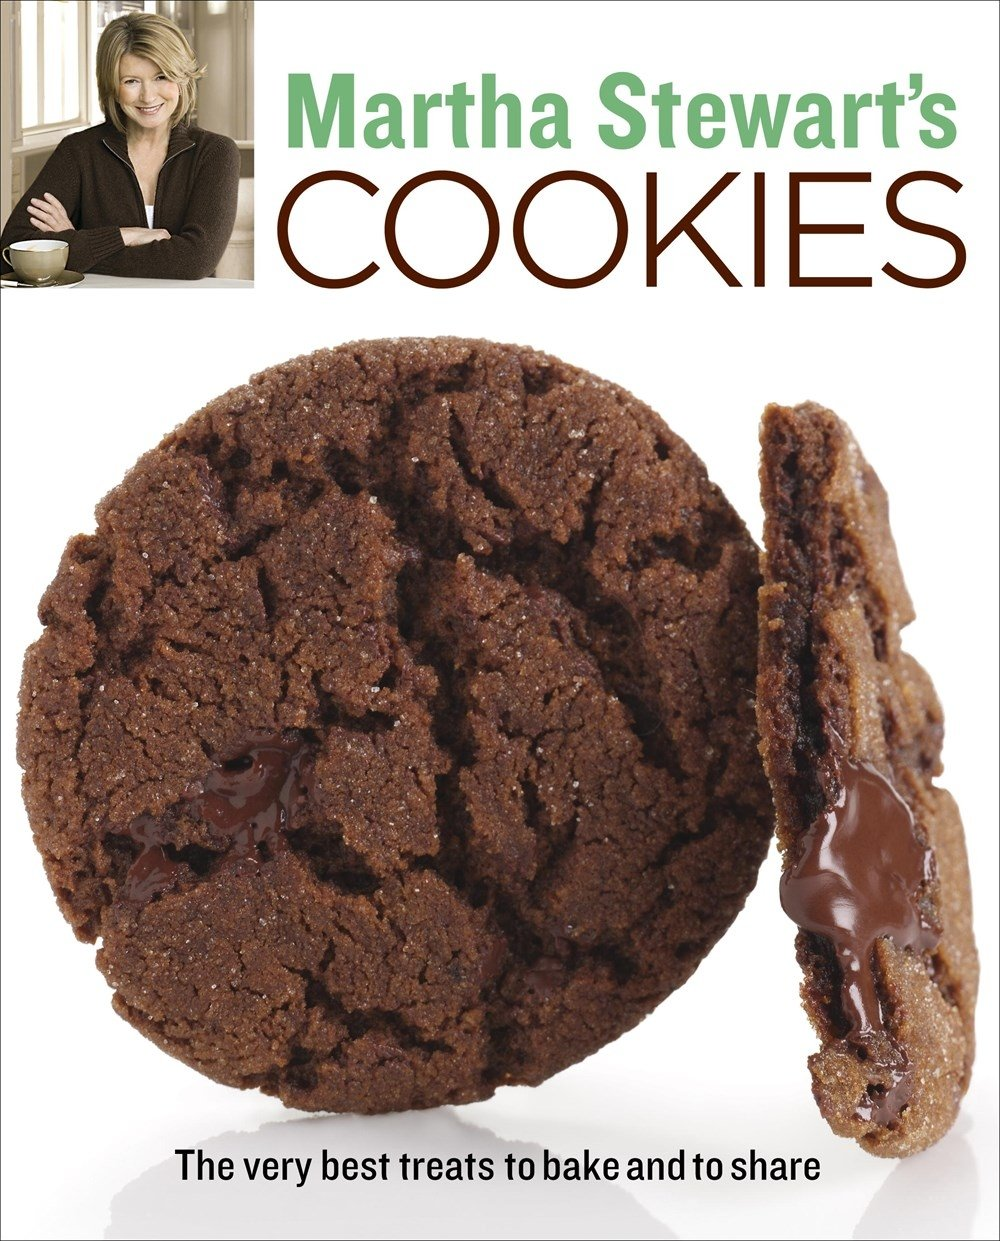 71w%2Bq73w9rL - Martha Stewart's Cookies: The Very Best Treats to Bake and to Share